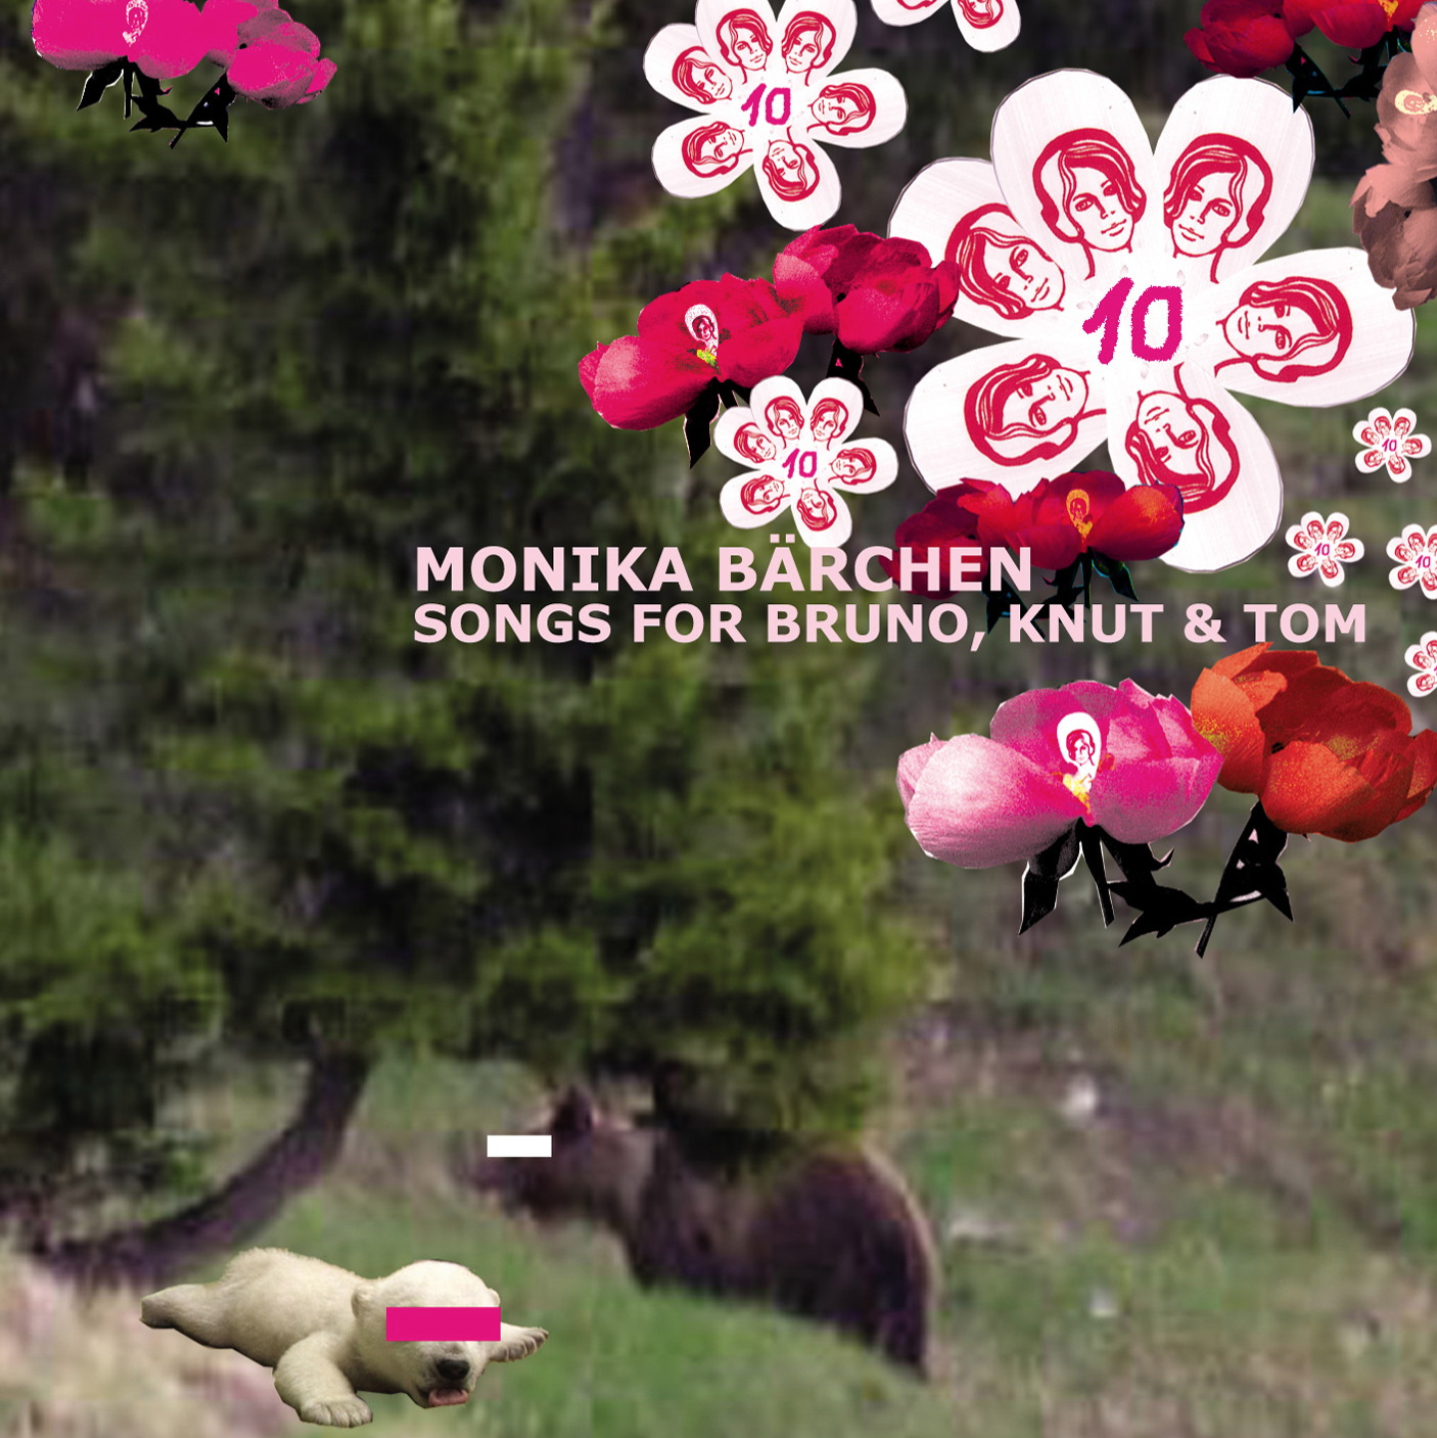 MONIKA BÄRCHEN: SONGS FOR BRUNO, KNUT & TOM   This compilation album was originally dedicated to a controversial cub 'Knut ' born at Nuremberg zoo in Germany . Mieko Shimizu as Mico contributed 'I see a soul'. She later re-arrange it and included in Mico's album ' My Tentacles'.  Released 2007 available from   Monika Enterprise